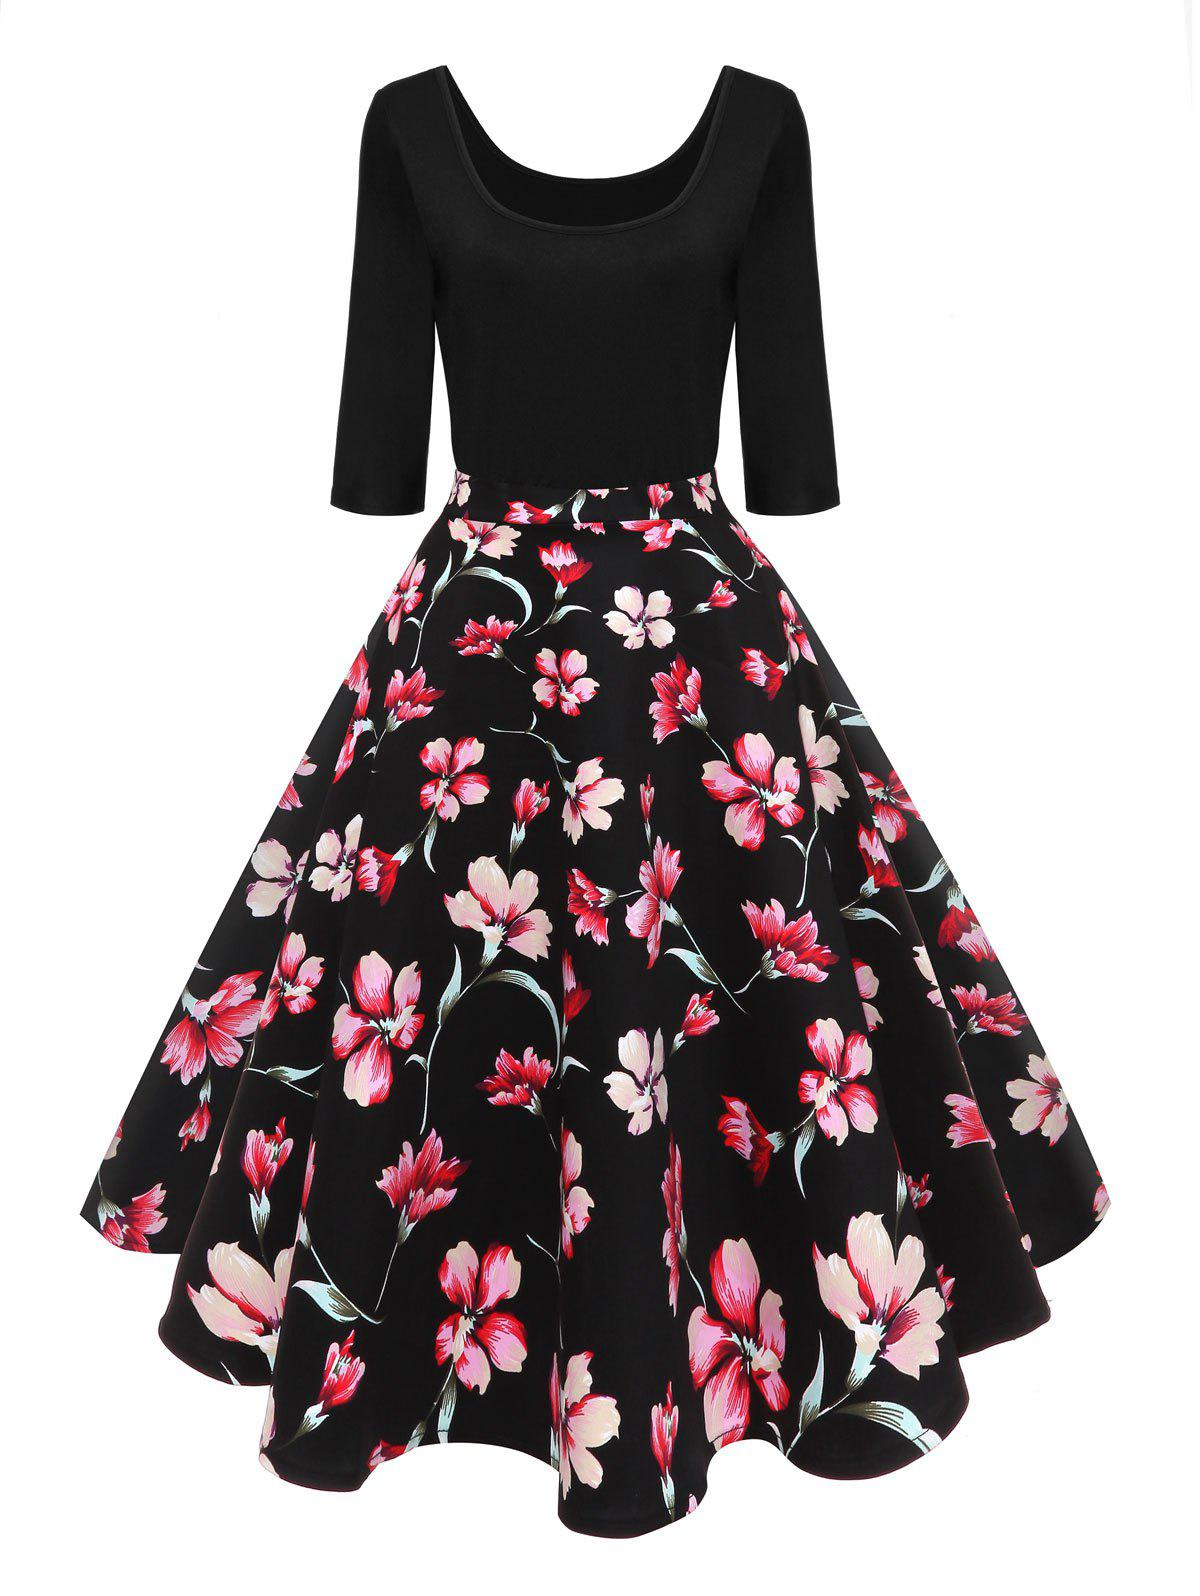 Chic Vintage U Neck Floral Pin Up Dress